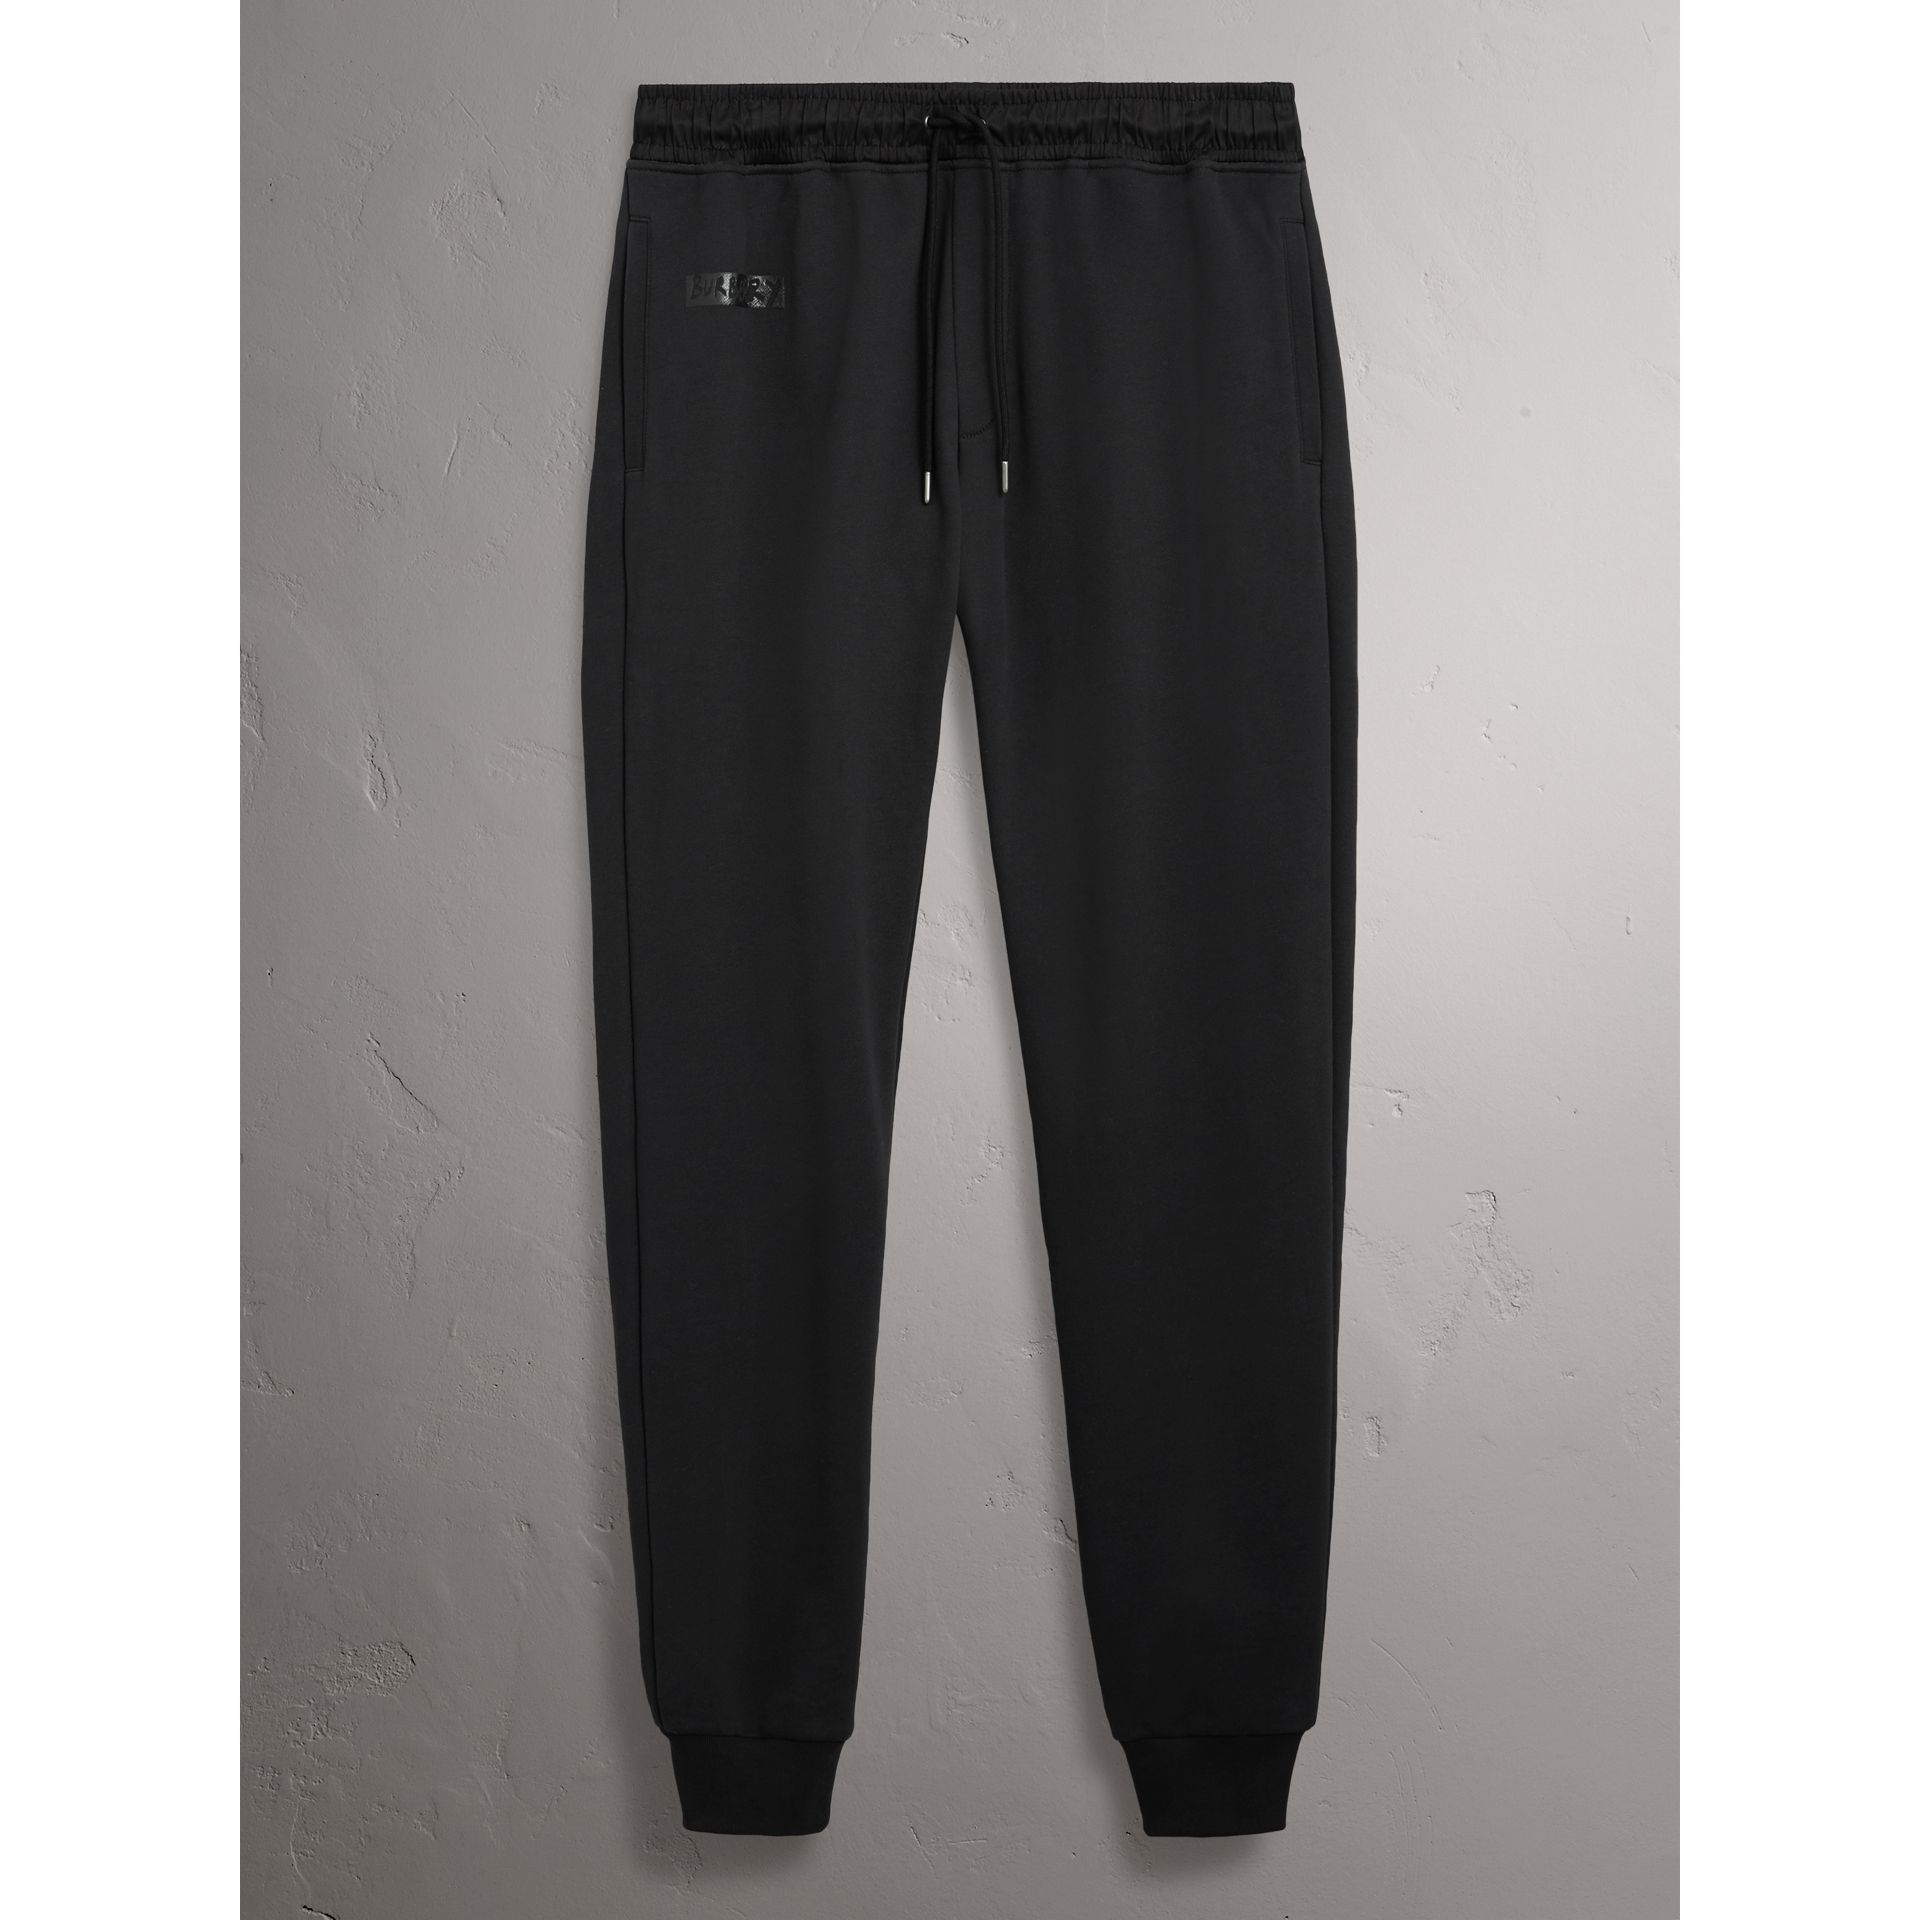 Burberry x Kris Wu Sweatpants in Black - Men | Burberry - gallery image 3